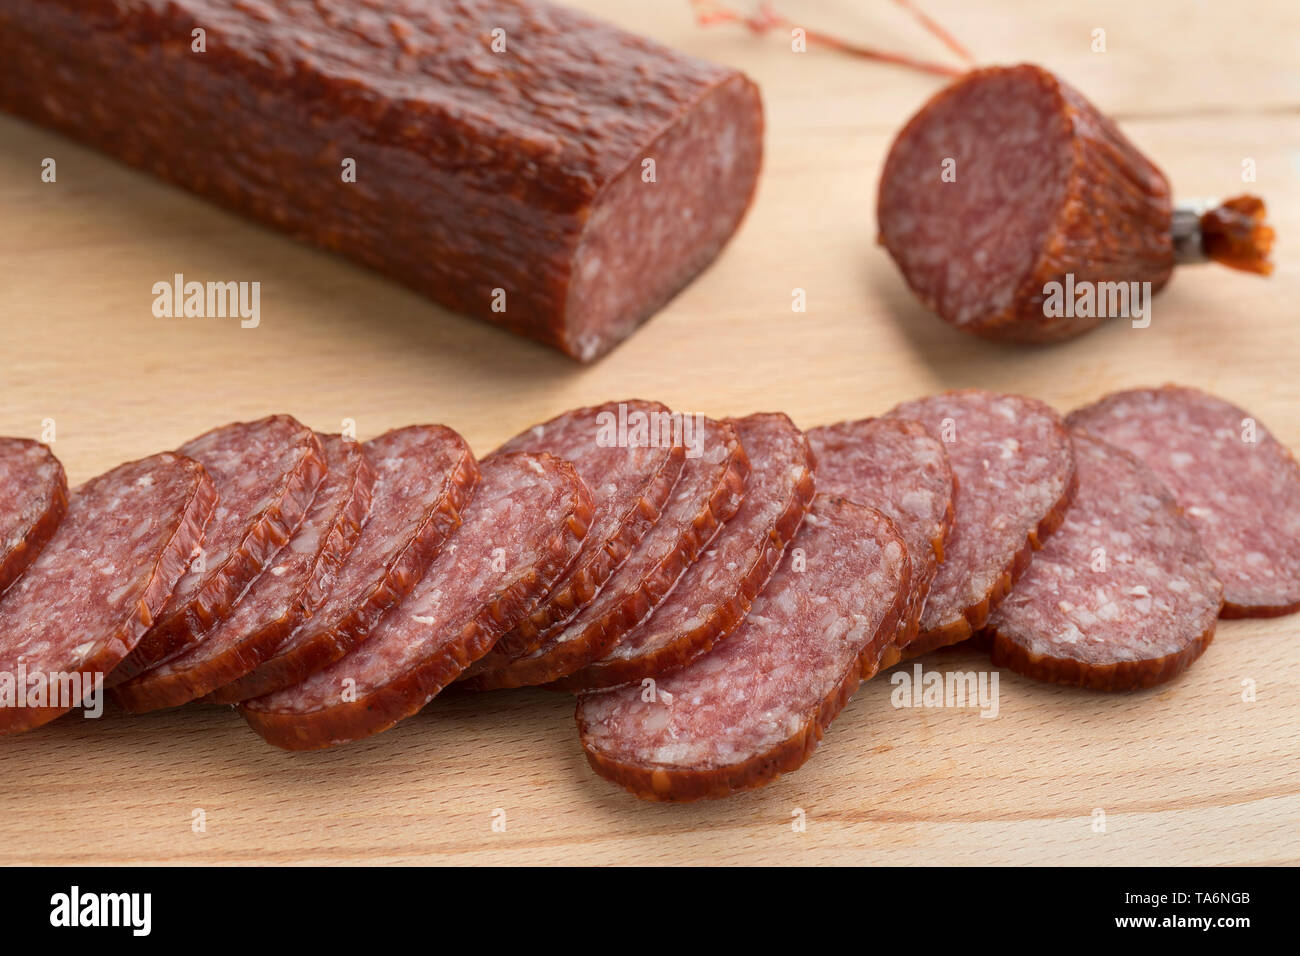 Polish wyborne salami cut into slices - Stock Image